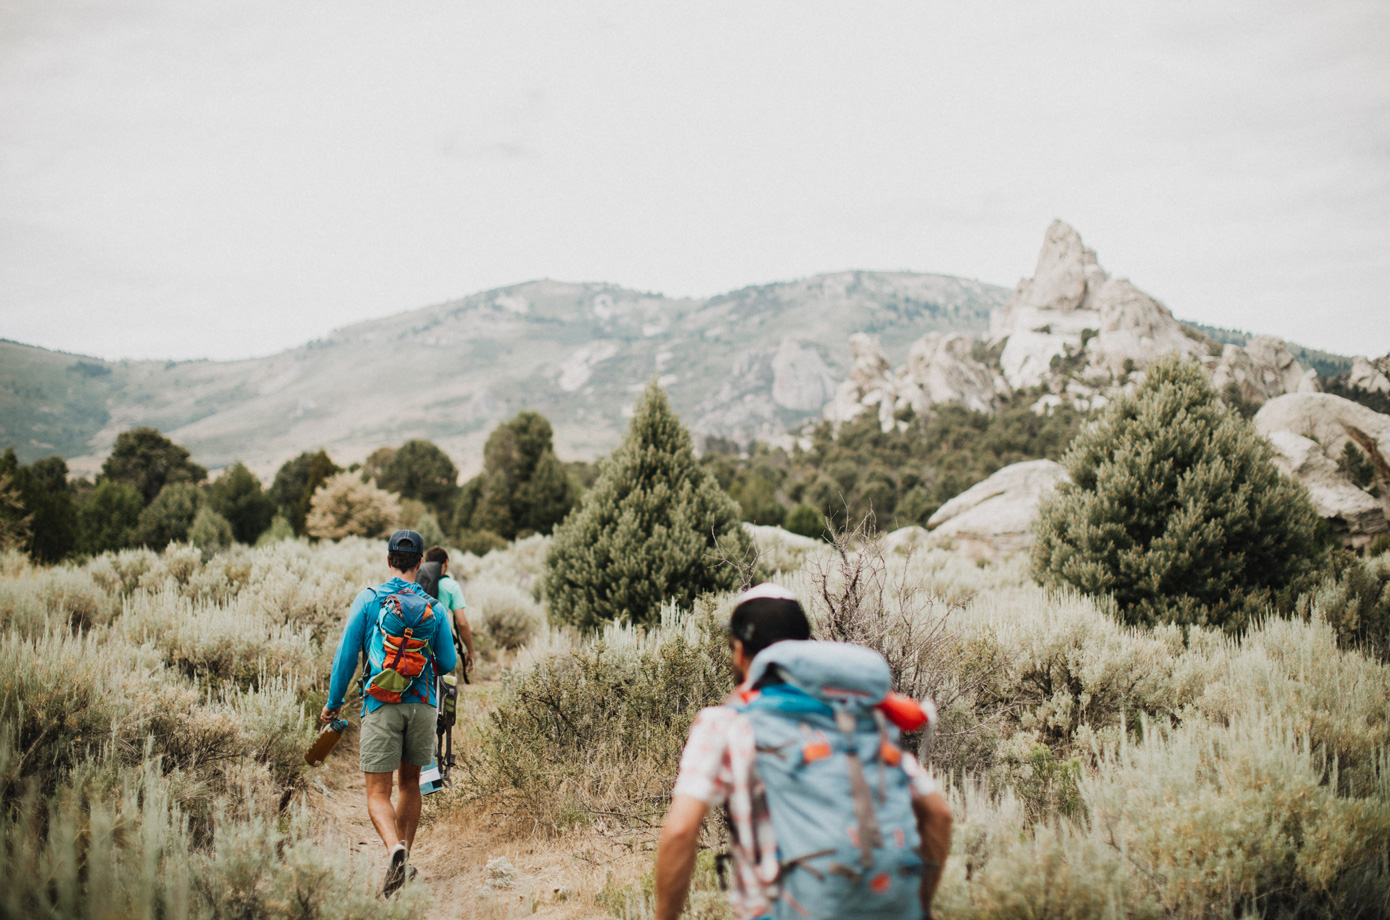 Kevin Jorgeson, Blake Mycoskie, and a guide approach at City of Rocks